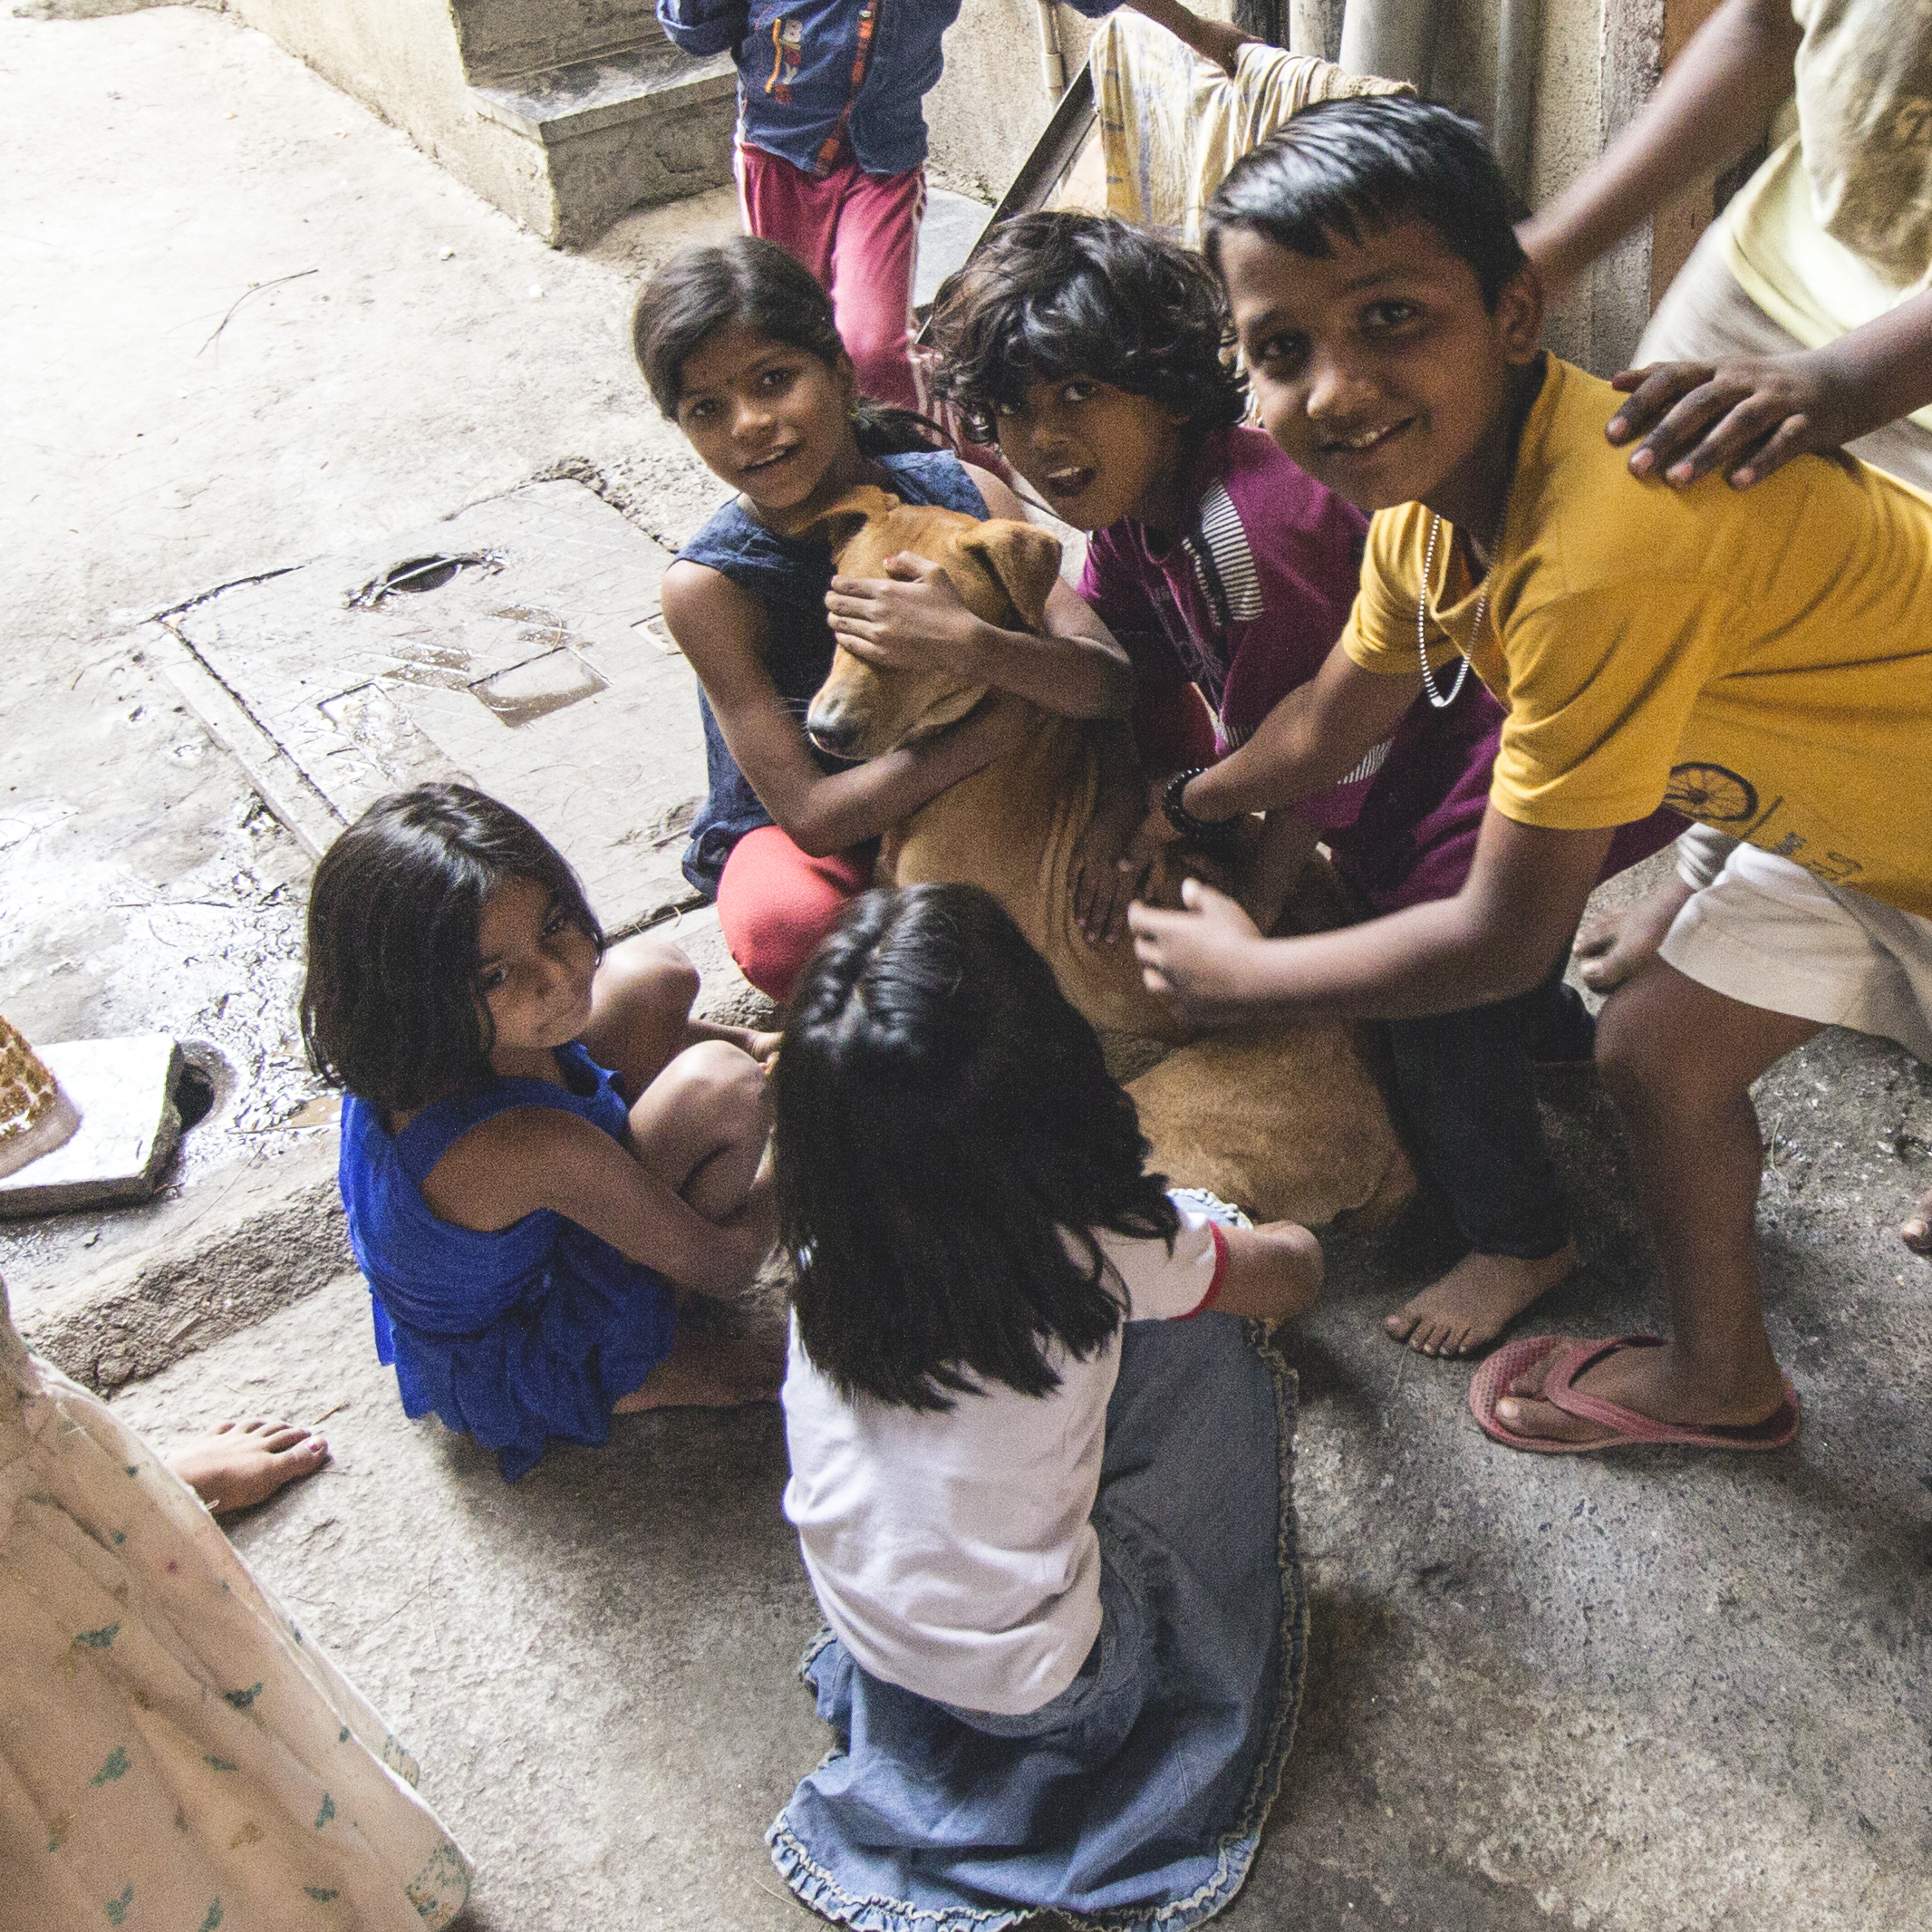 Children playing with a dog